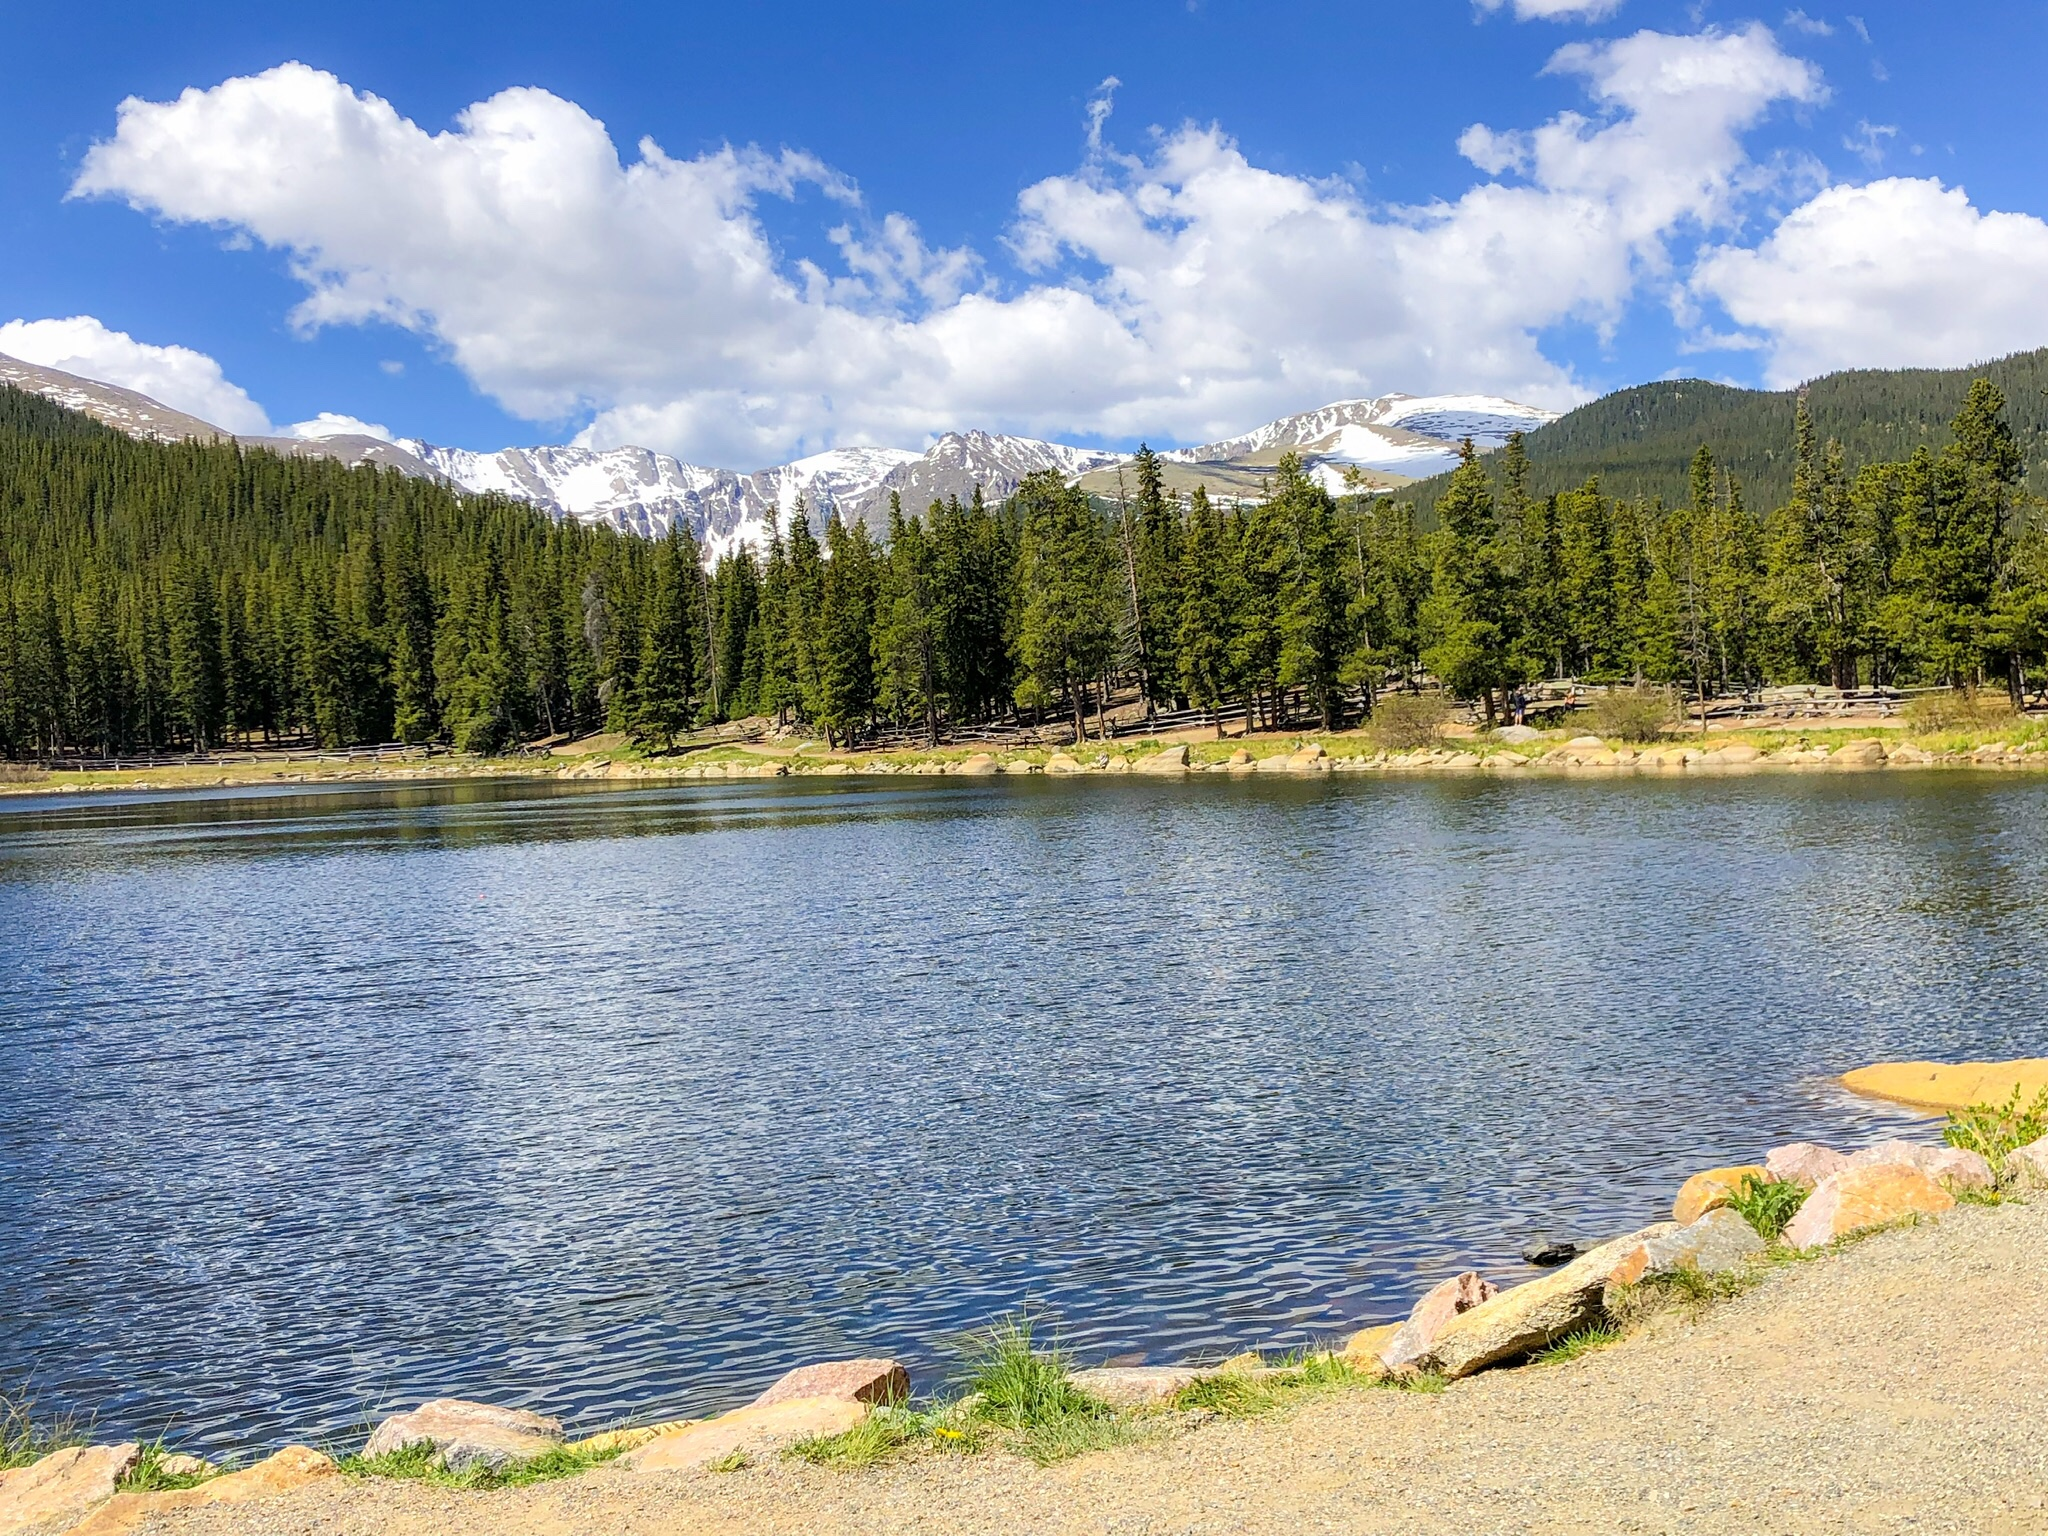 Stunning views at Echo Lake near Mount Evans. ©Suzanne Brown 2019